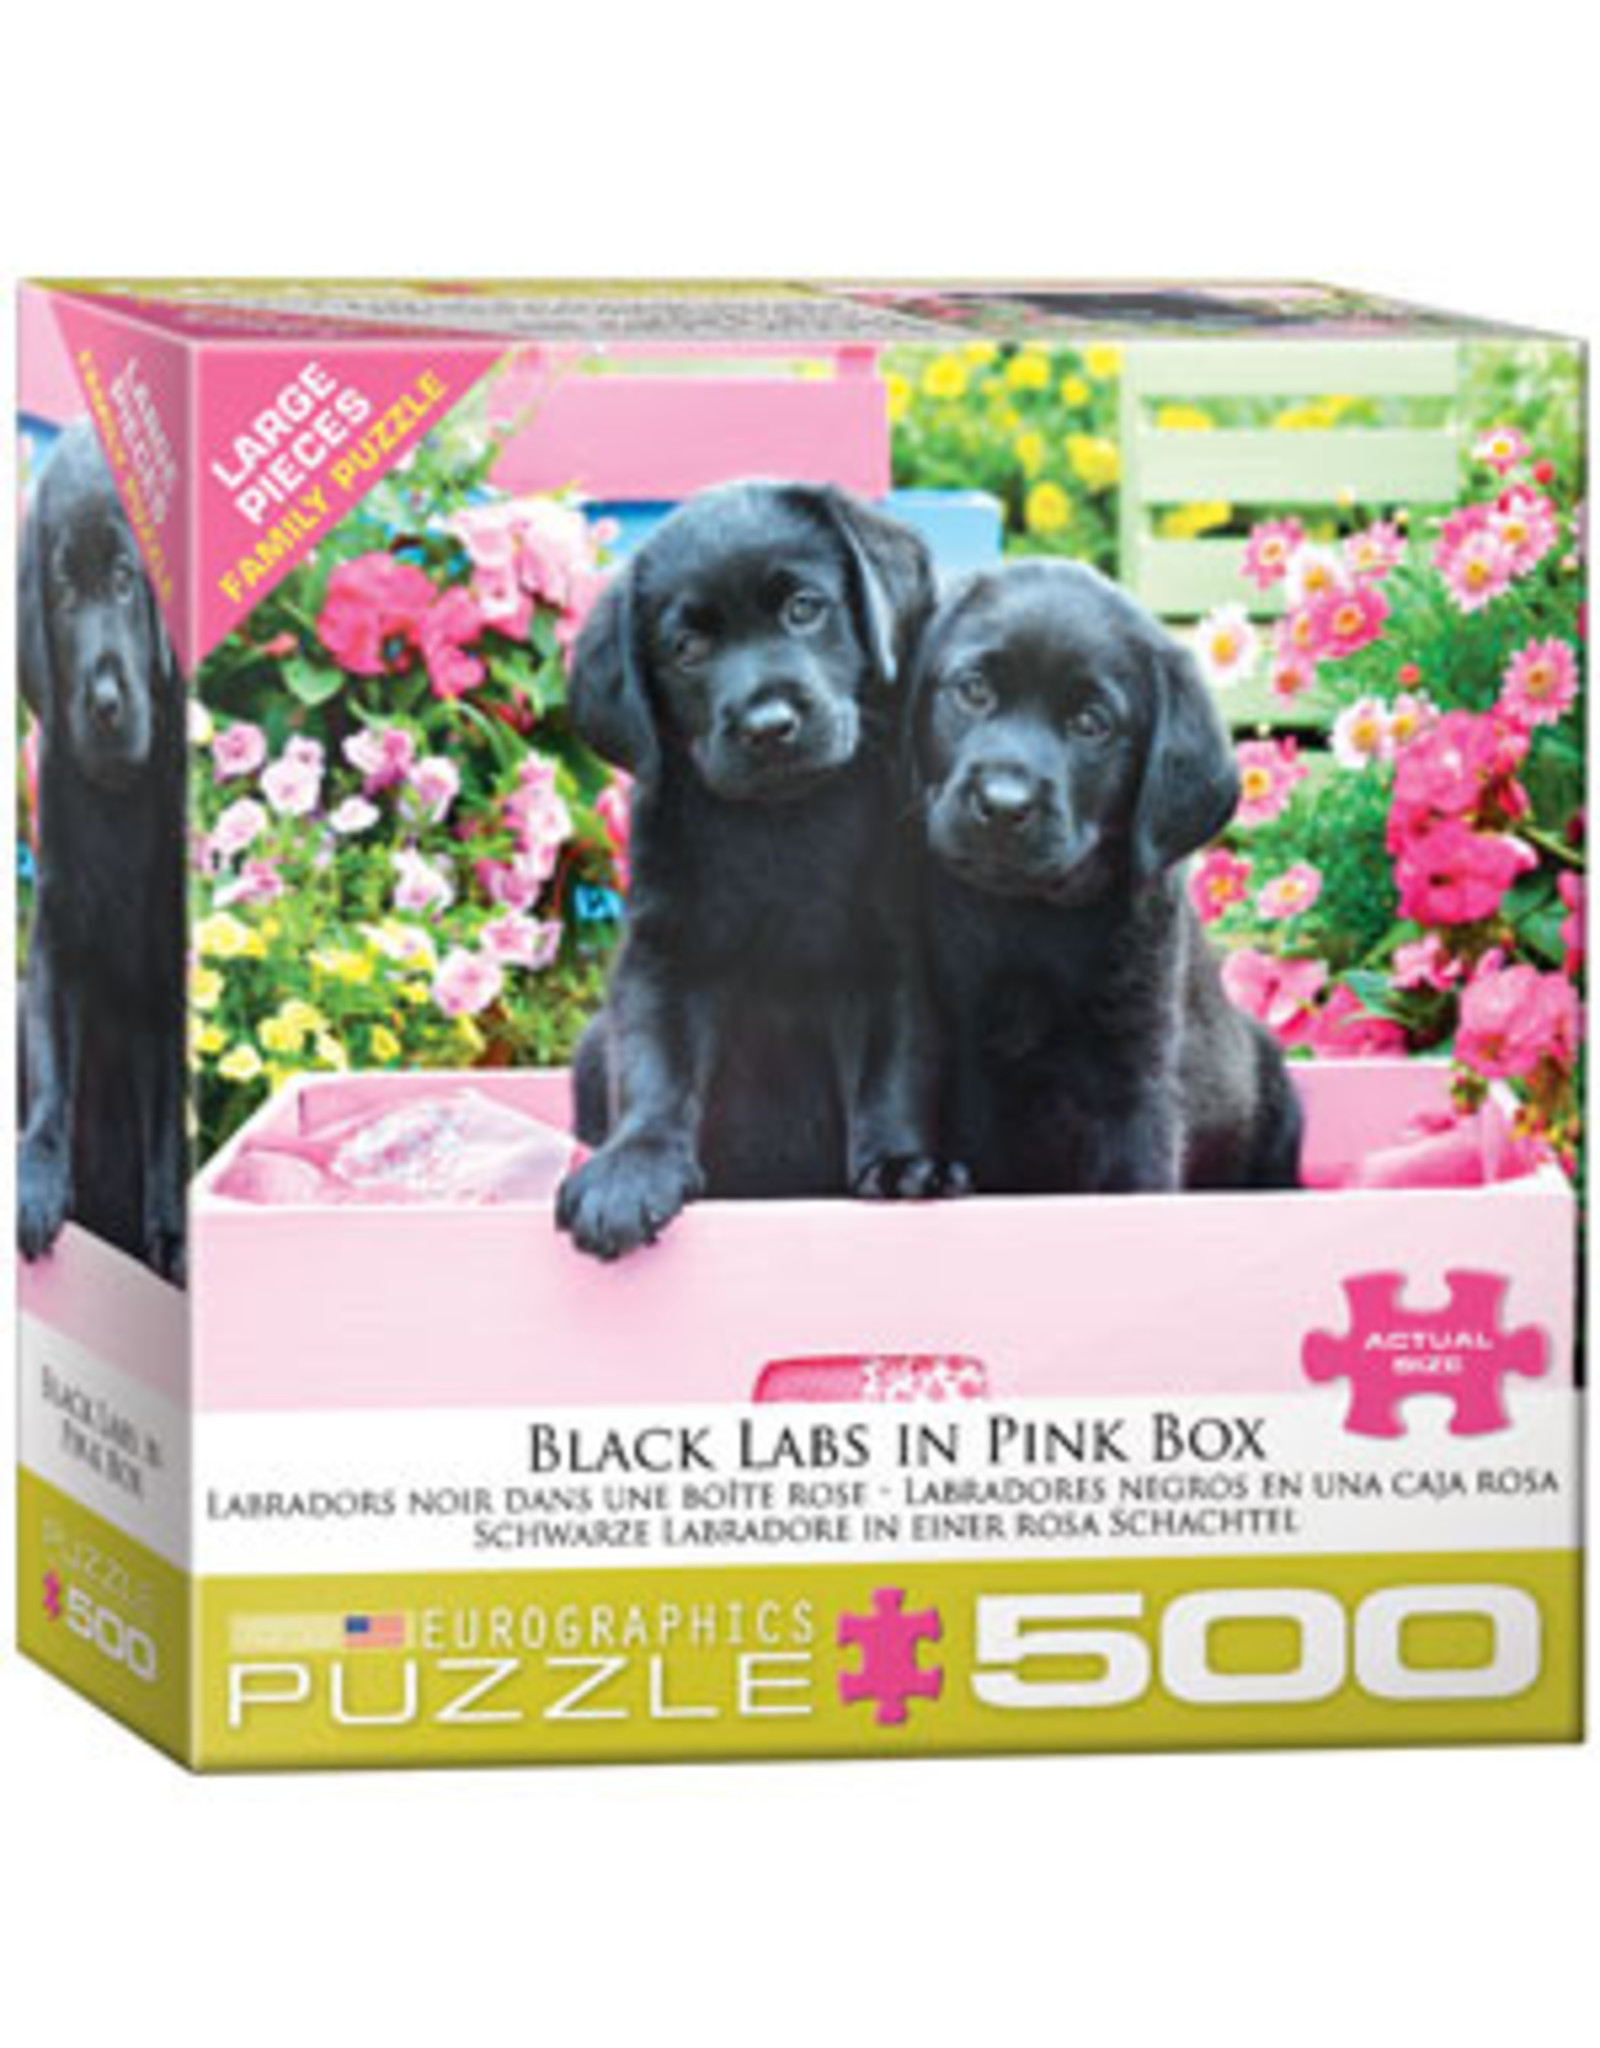 Eurographics Black Labs in Pink Box